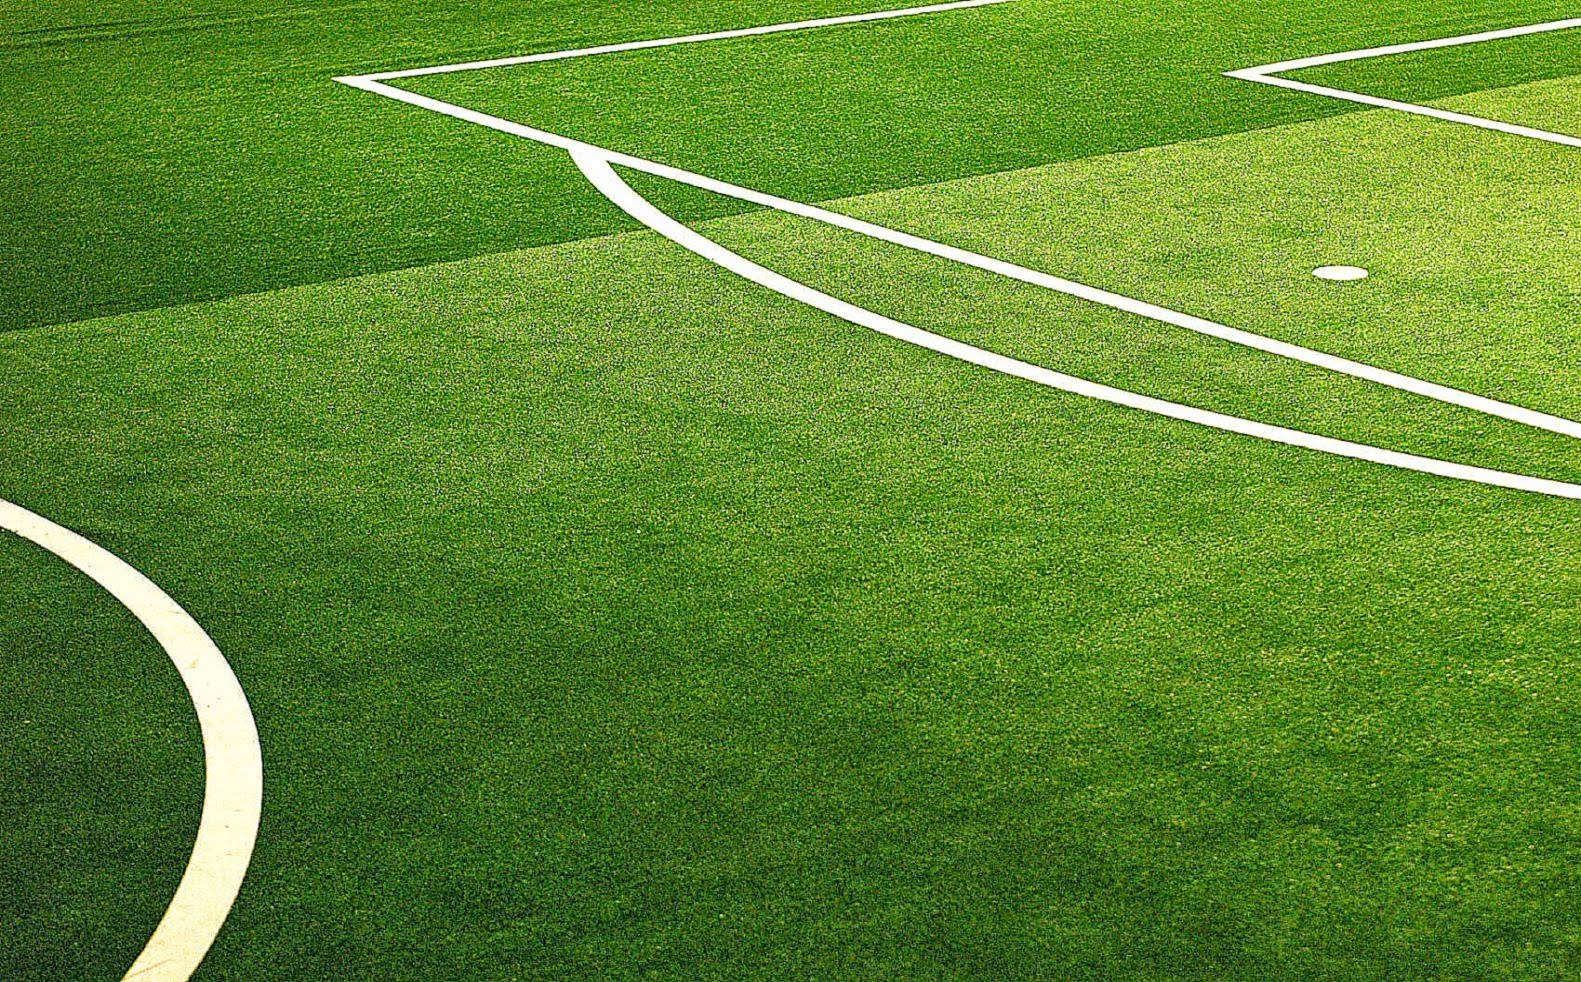 soccer-field-wallpaper-hd-29323-hd-wallpapers-in-football-tels